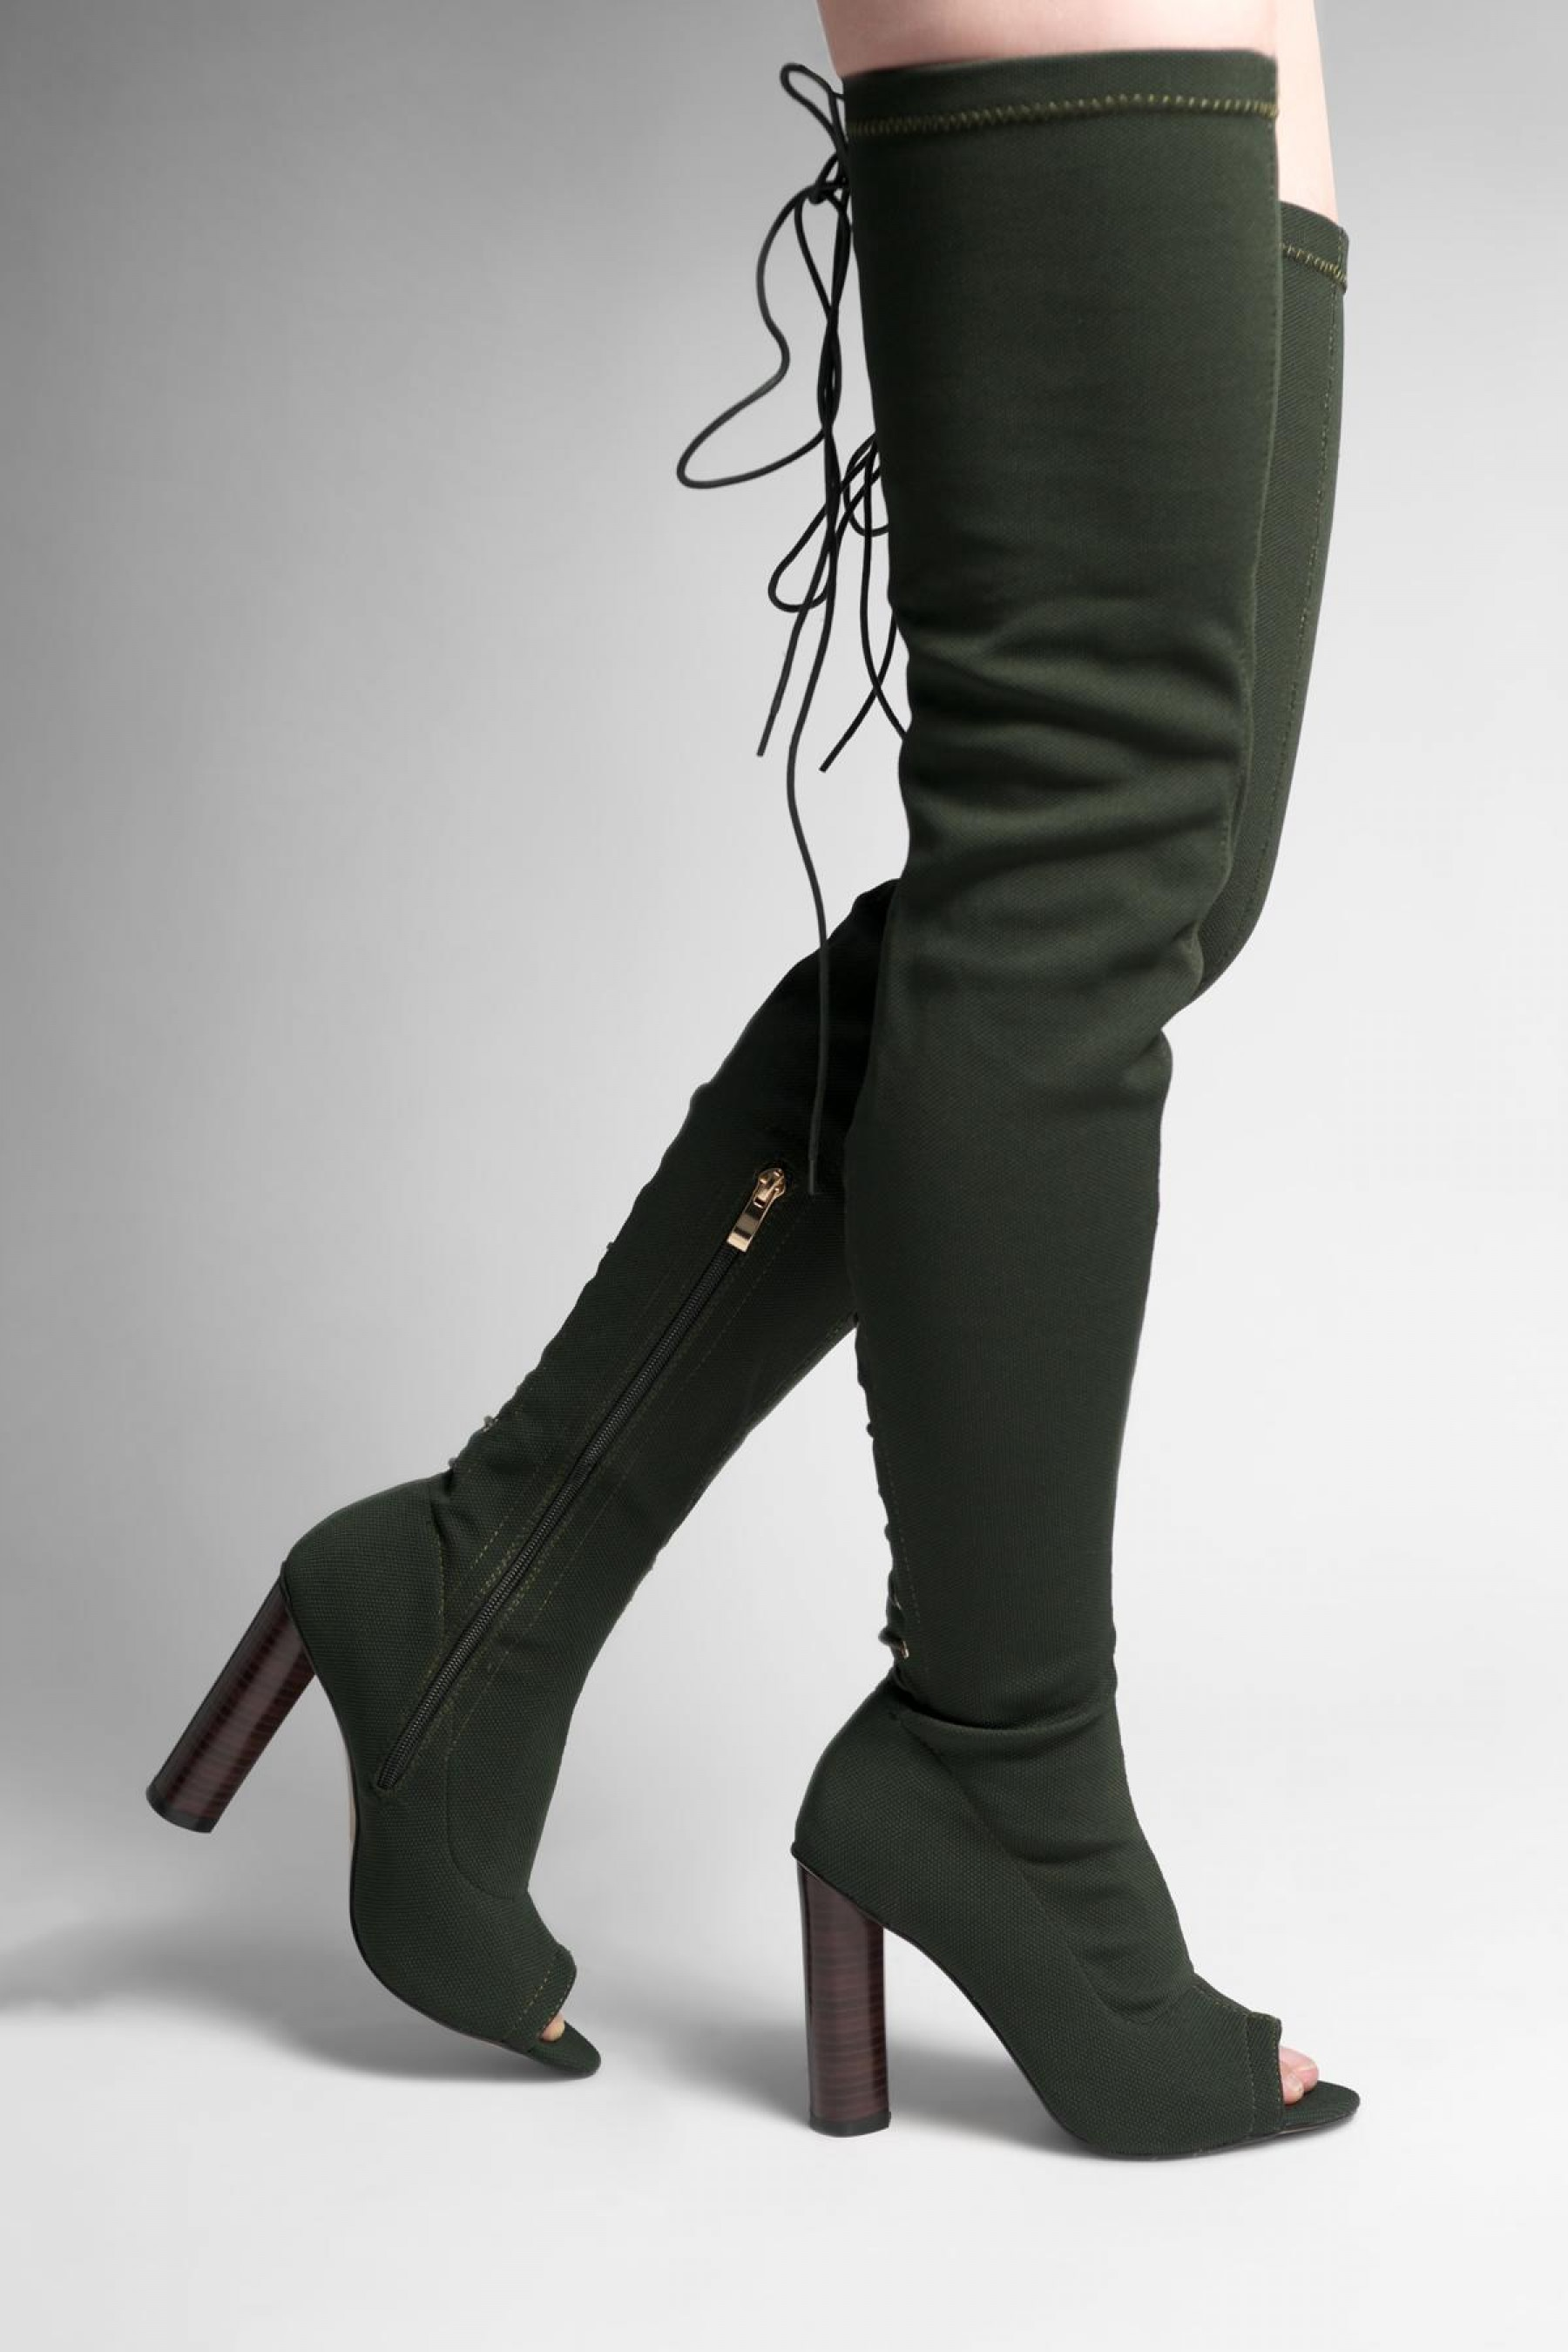 HerStyle Dainna peep toe, long sock boot with lace up back fastenind, thigh high, chunky heel (Olive)